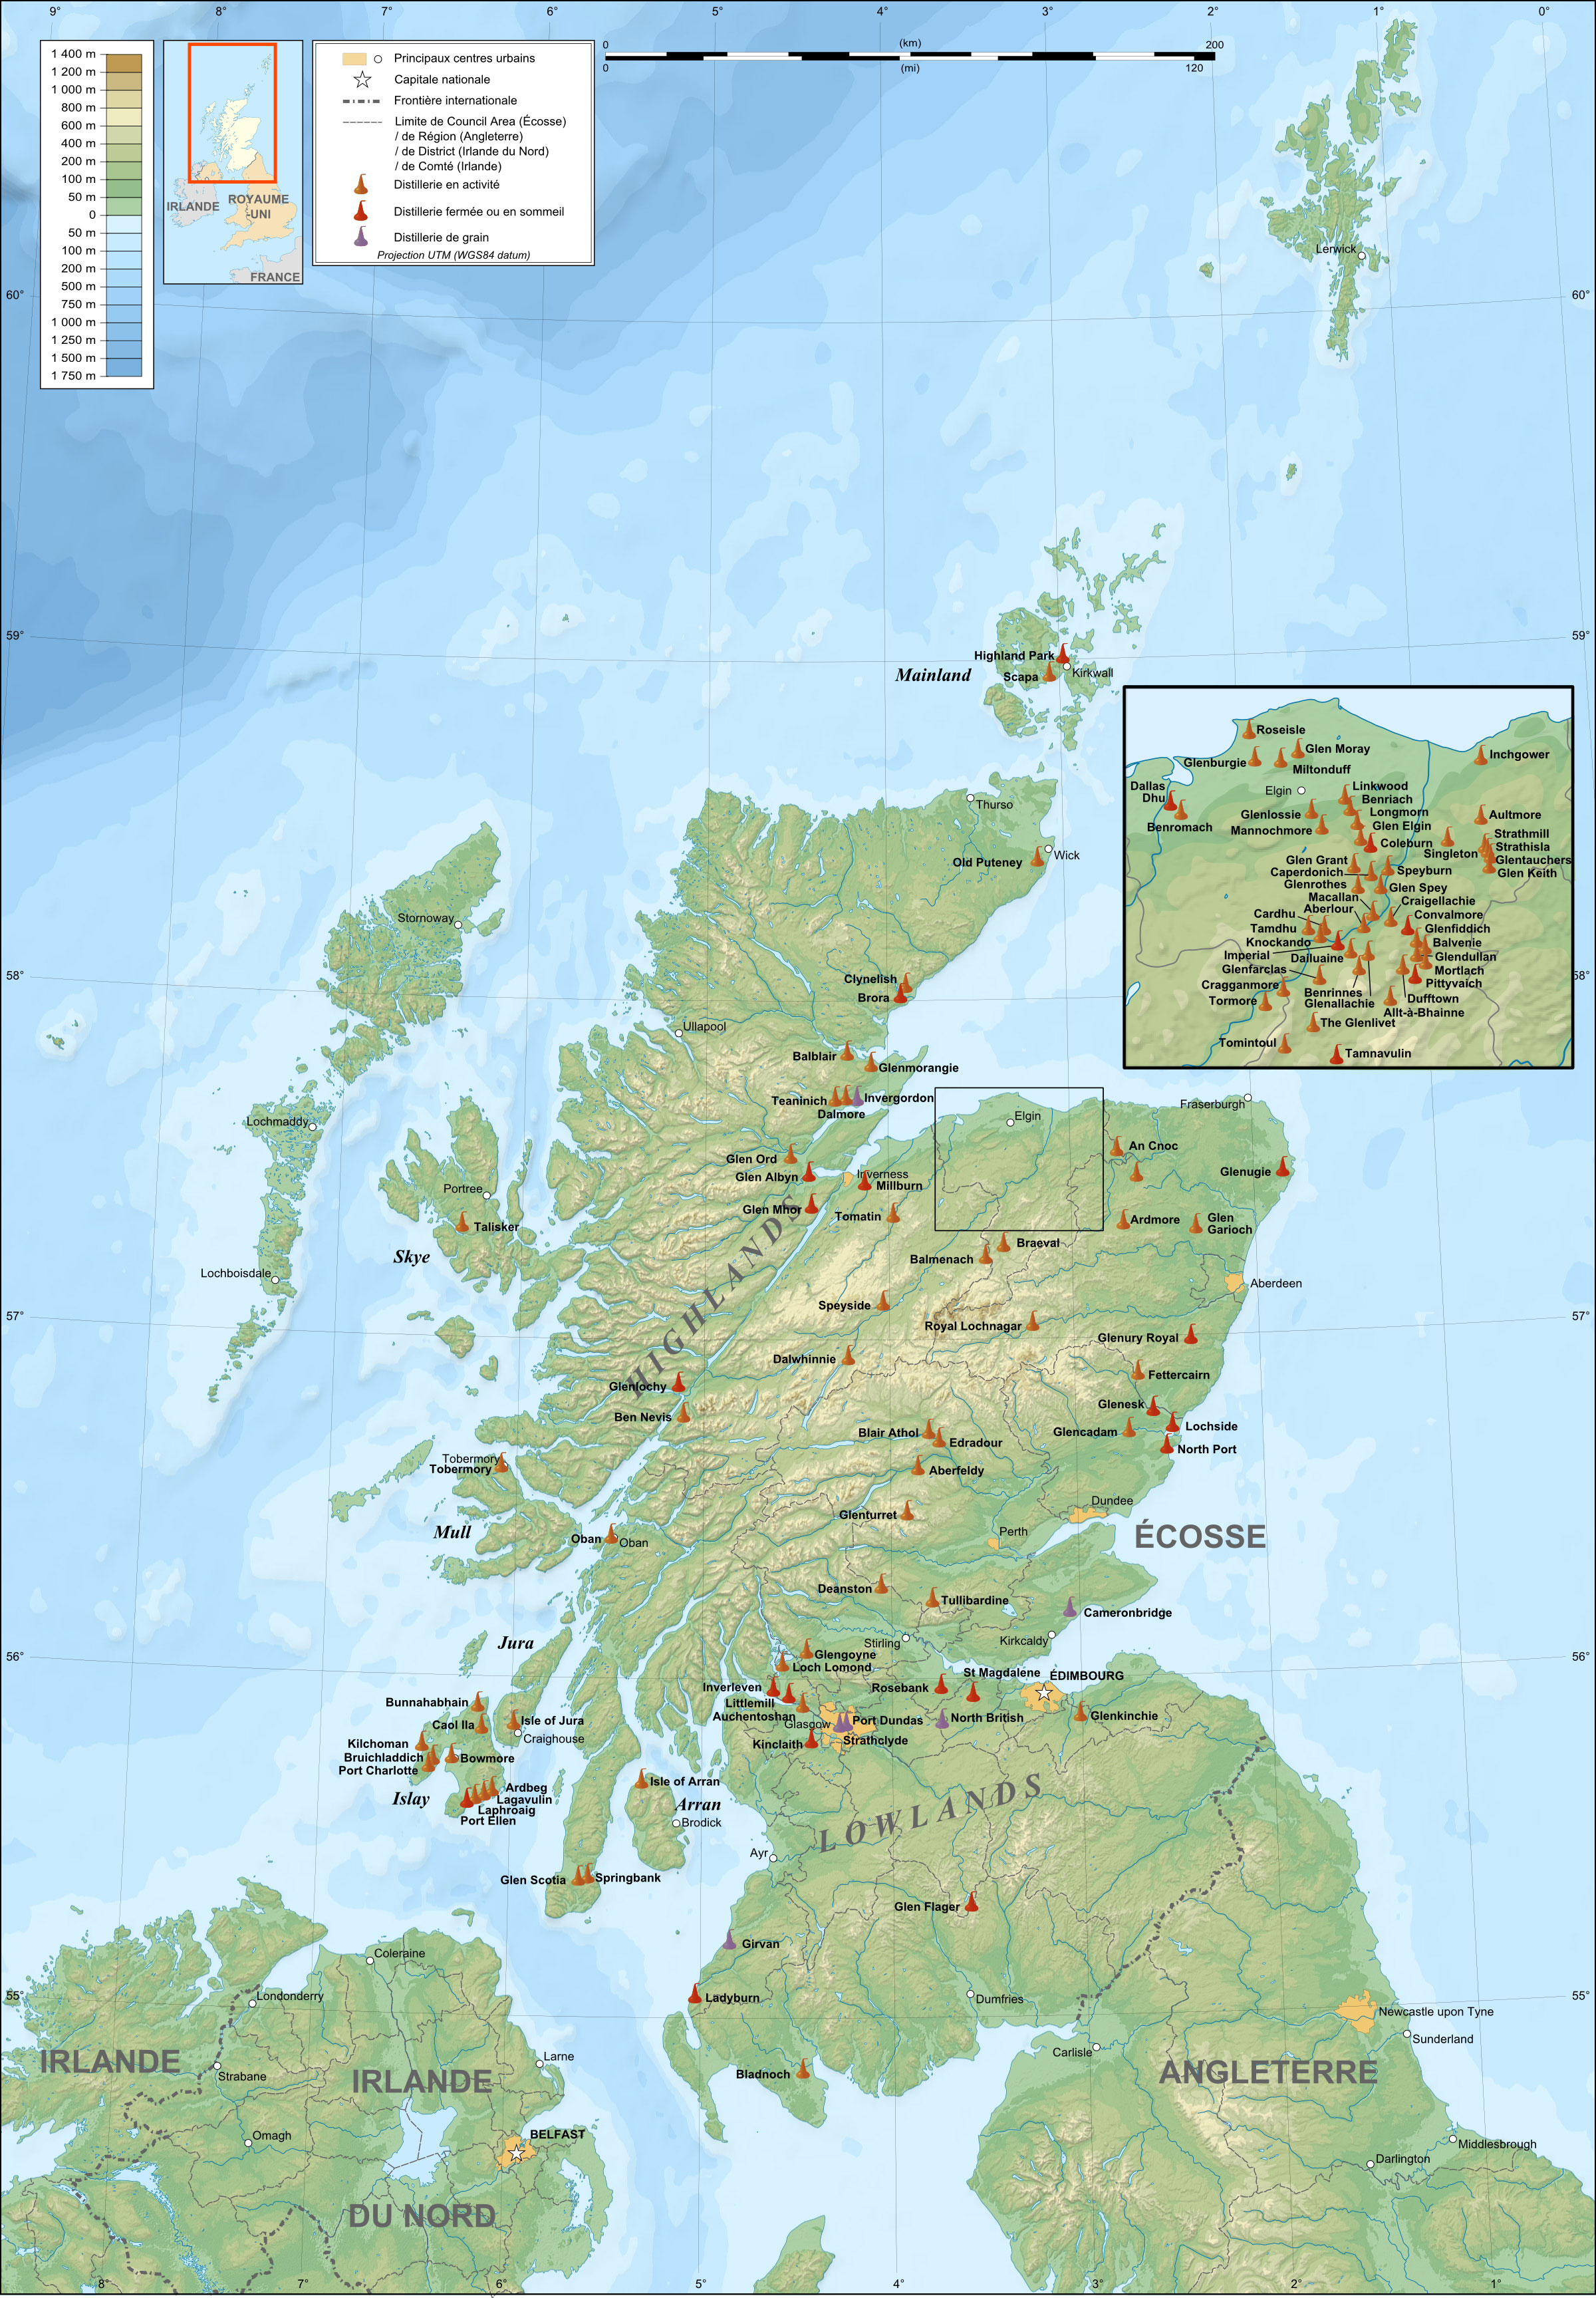 scottish distillery map with File Scotland Map Of Whisky Distilleries Fr on Westisle as well 1163567 furthermore The Whisky Distillation Process In One Simple Infographic in addition 2011 11 01 archive additionally Distillery Visit Balvenie In Speyside Scotland.